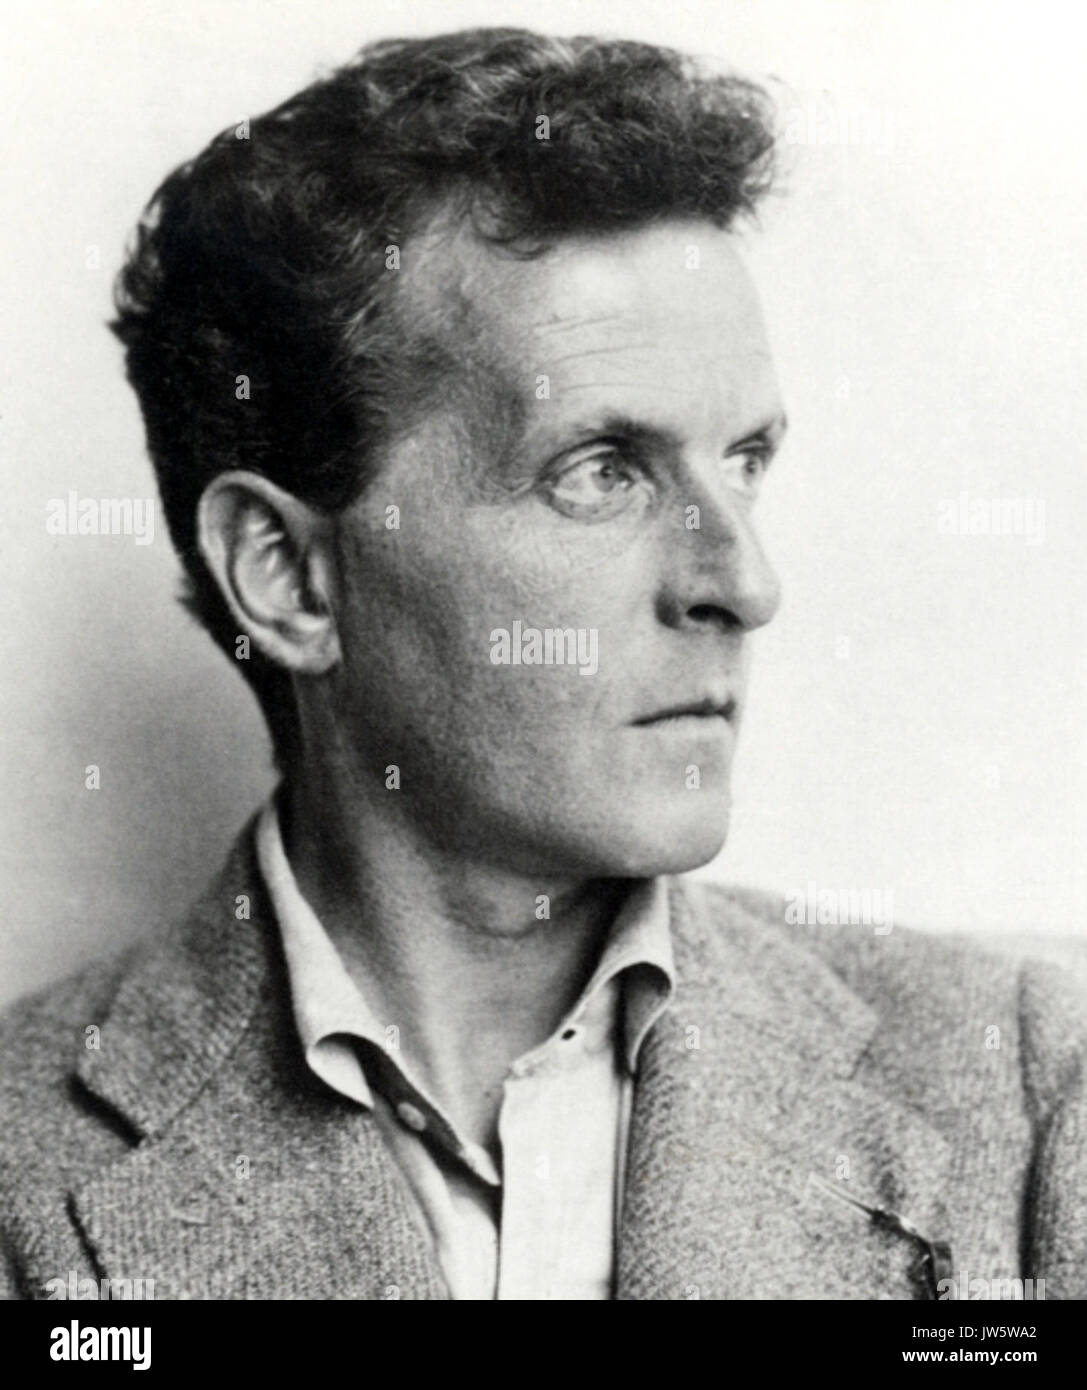 Ludwig Wittgenstein (cropped) - Stock Image